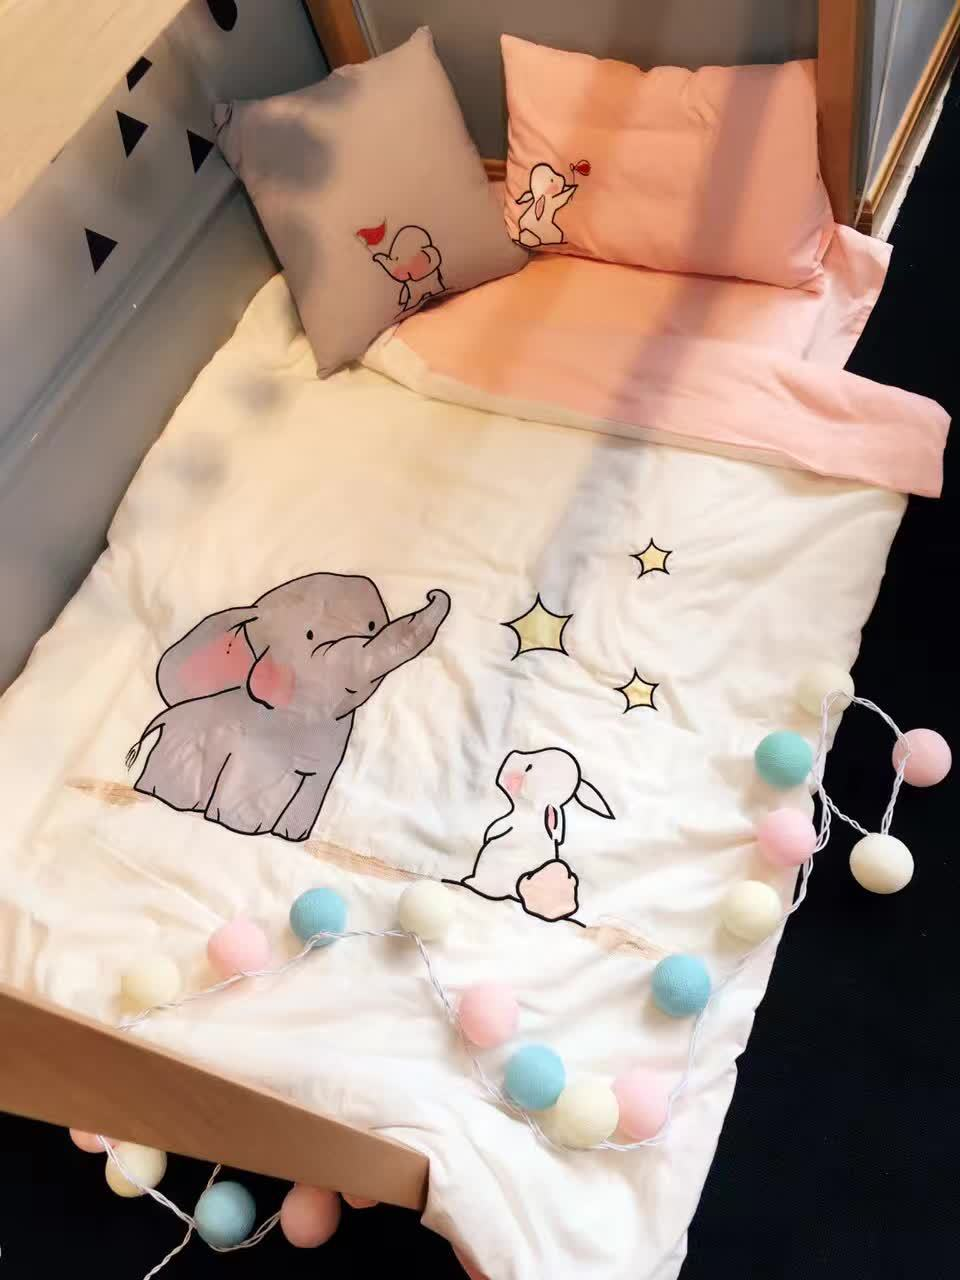 3 Pcs Baby Bedding Set Breathable Baby Bedding Sets For Cots Cartoon Elephant Crib Quilt Cove Sheet Detachable Baby Bed Sets pink french toile fitted crib sheet for baby and toddler bedding sets by sweet jojo designs toile print